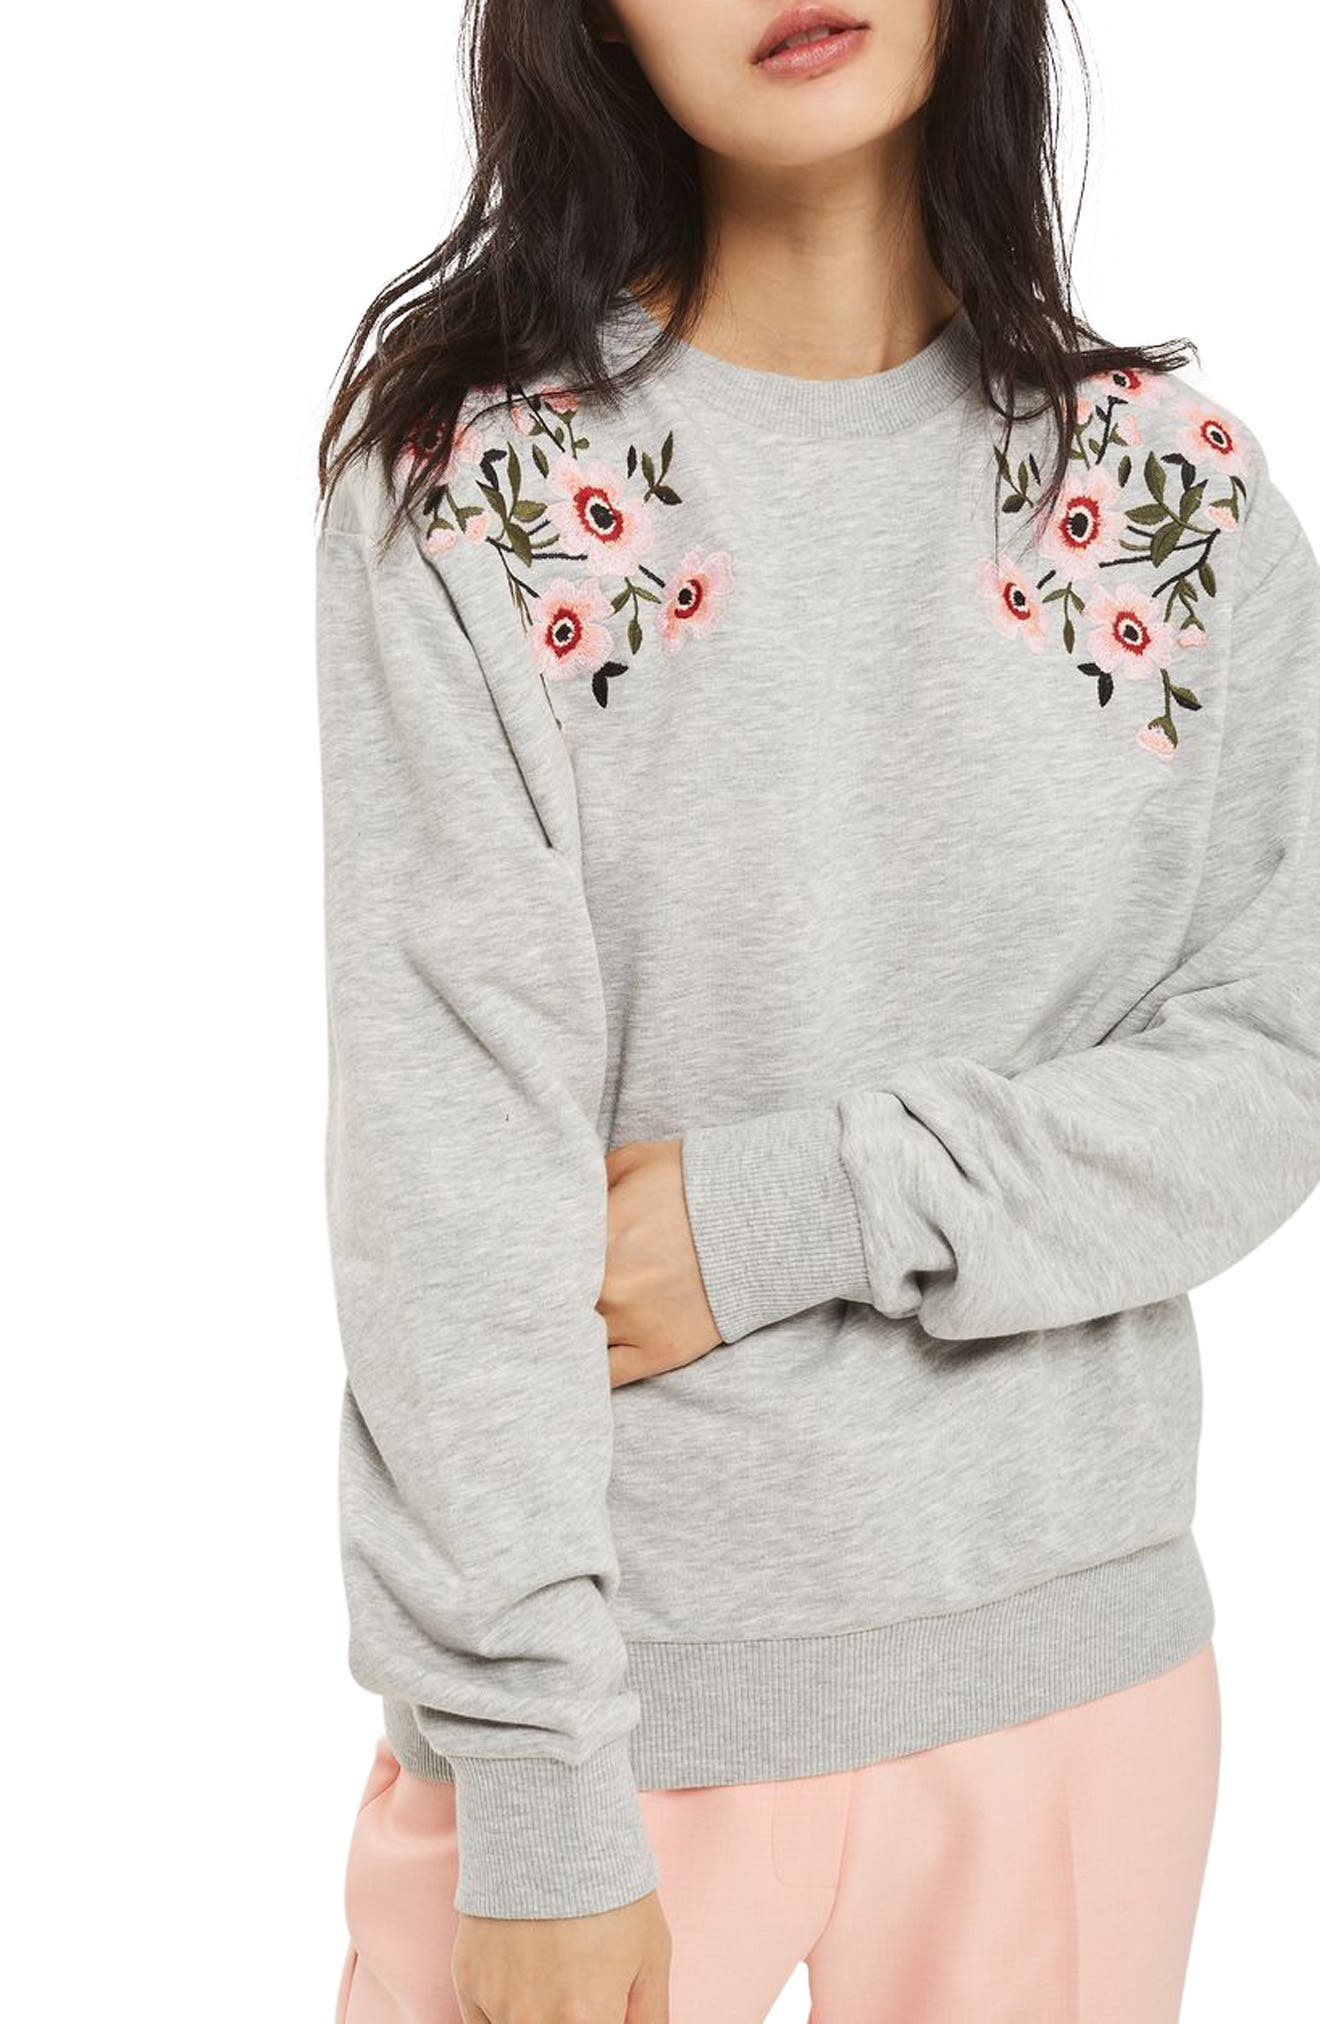 Topshop Embroidered Sweatshirt (Regular & Petite)